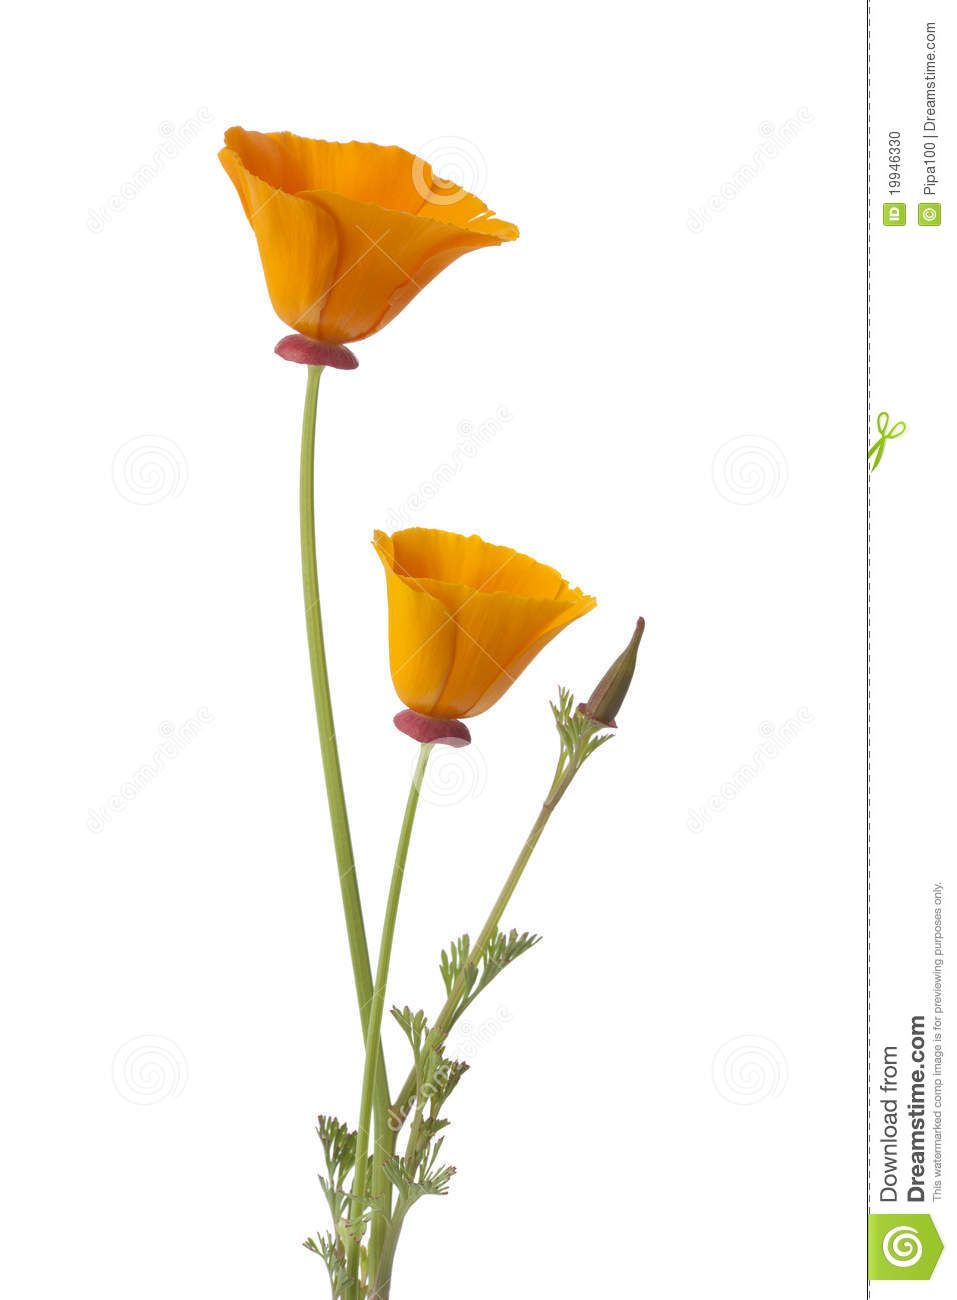 hight resolution of california poppy clipart google search